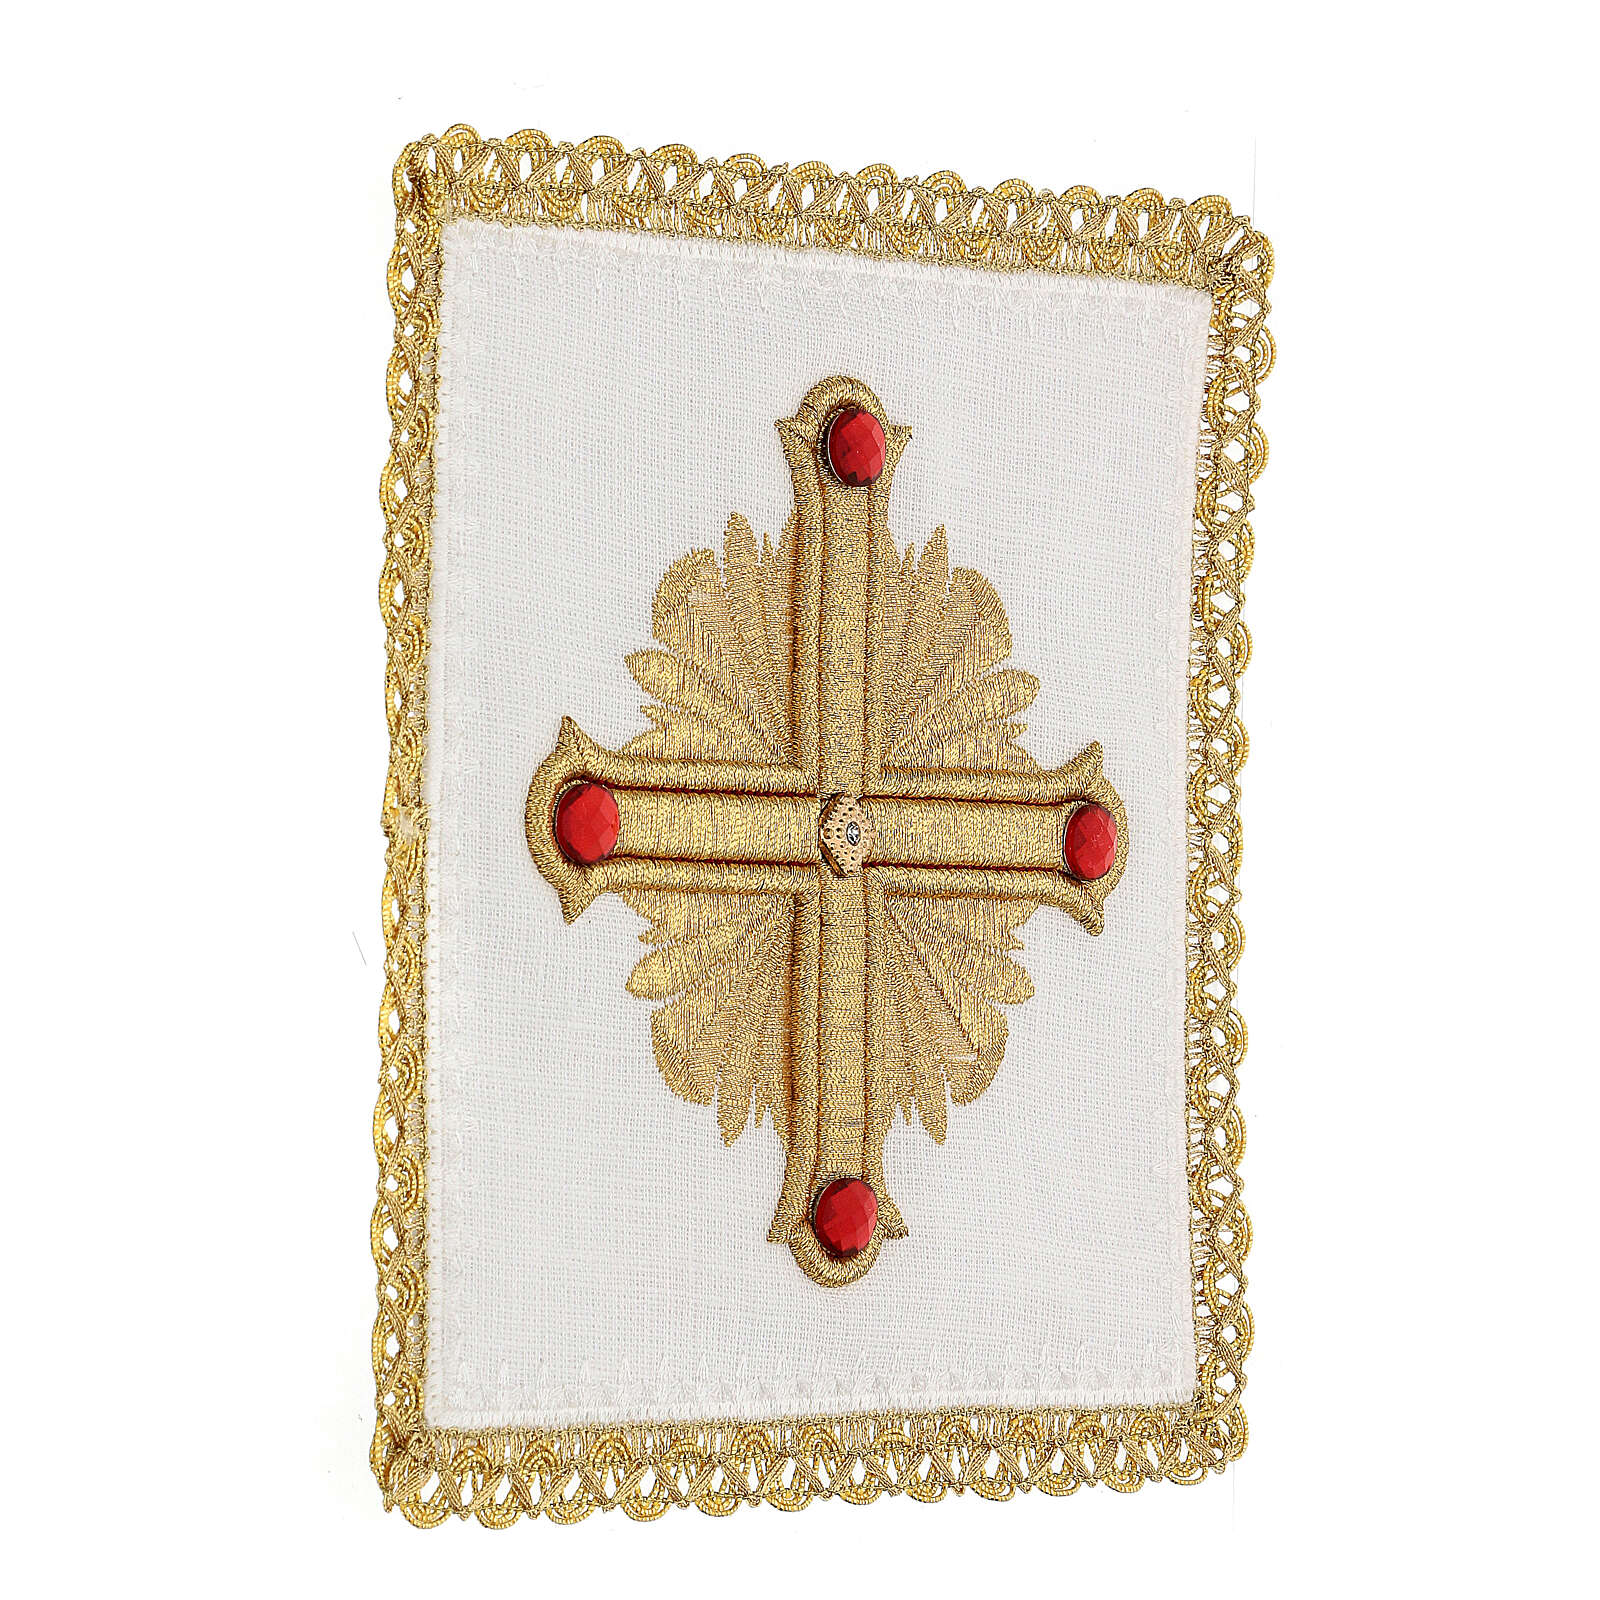 Altar cloth set 4 pieces, 100% LINEN gold red cross embroidery Limited Edition 4